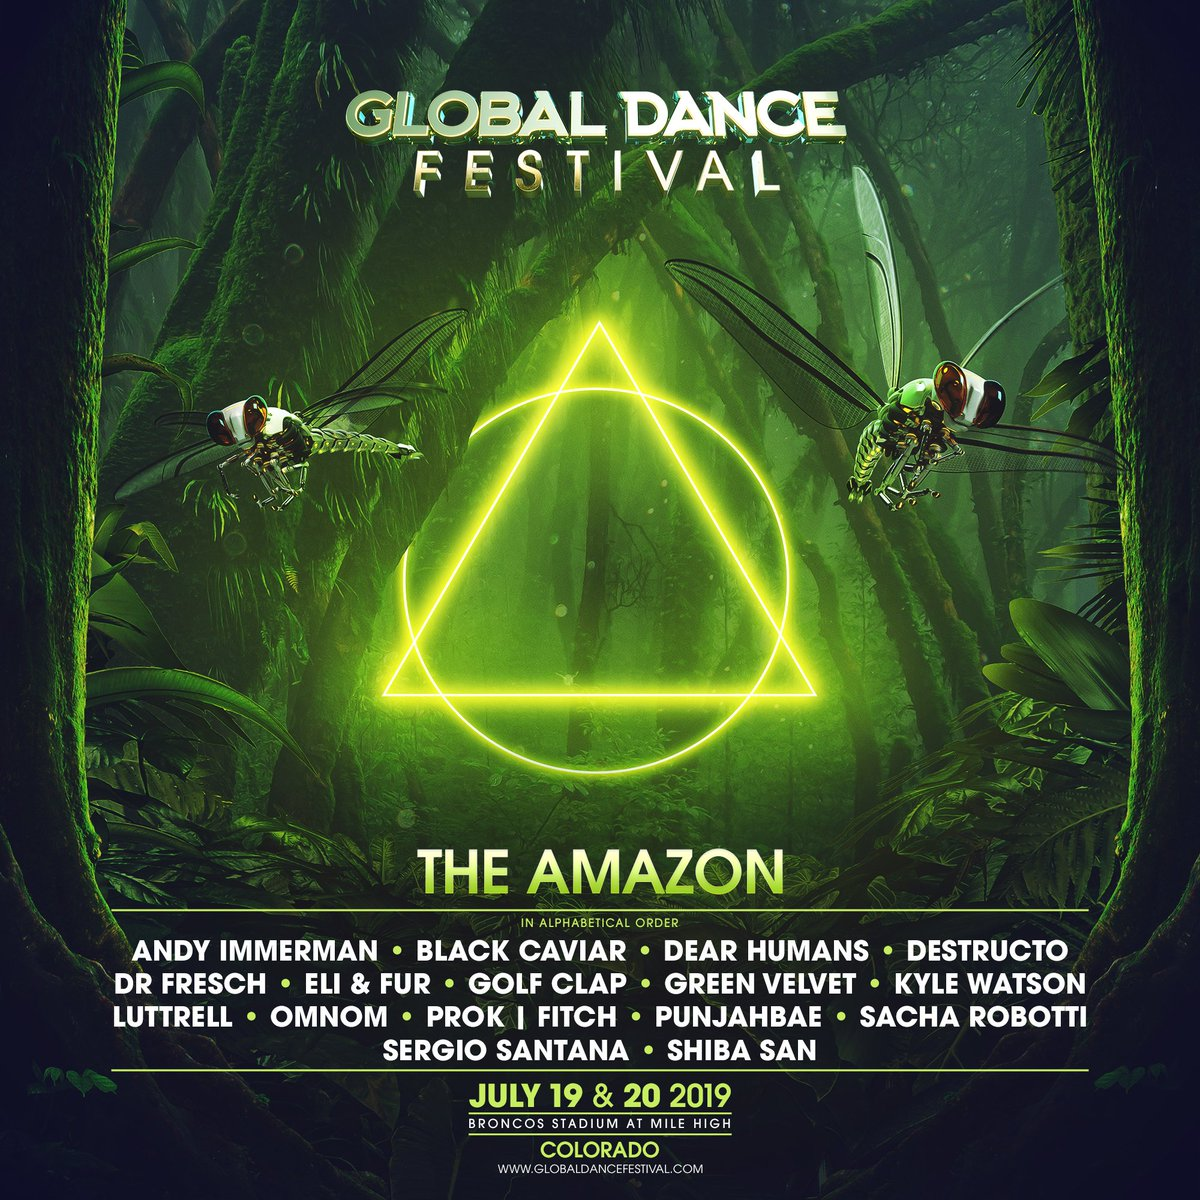 The Global Dance Festival Amazon lineup for 2019